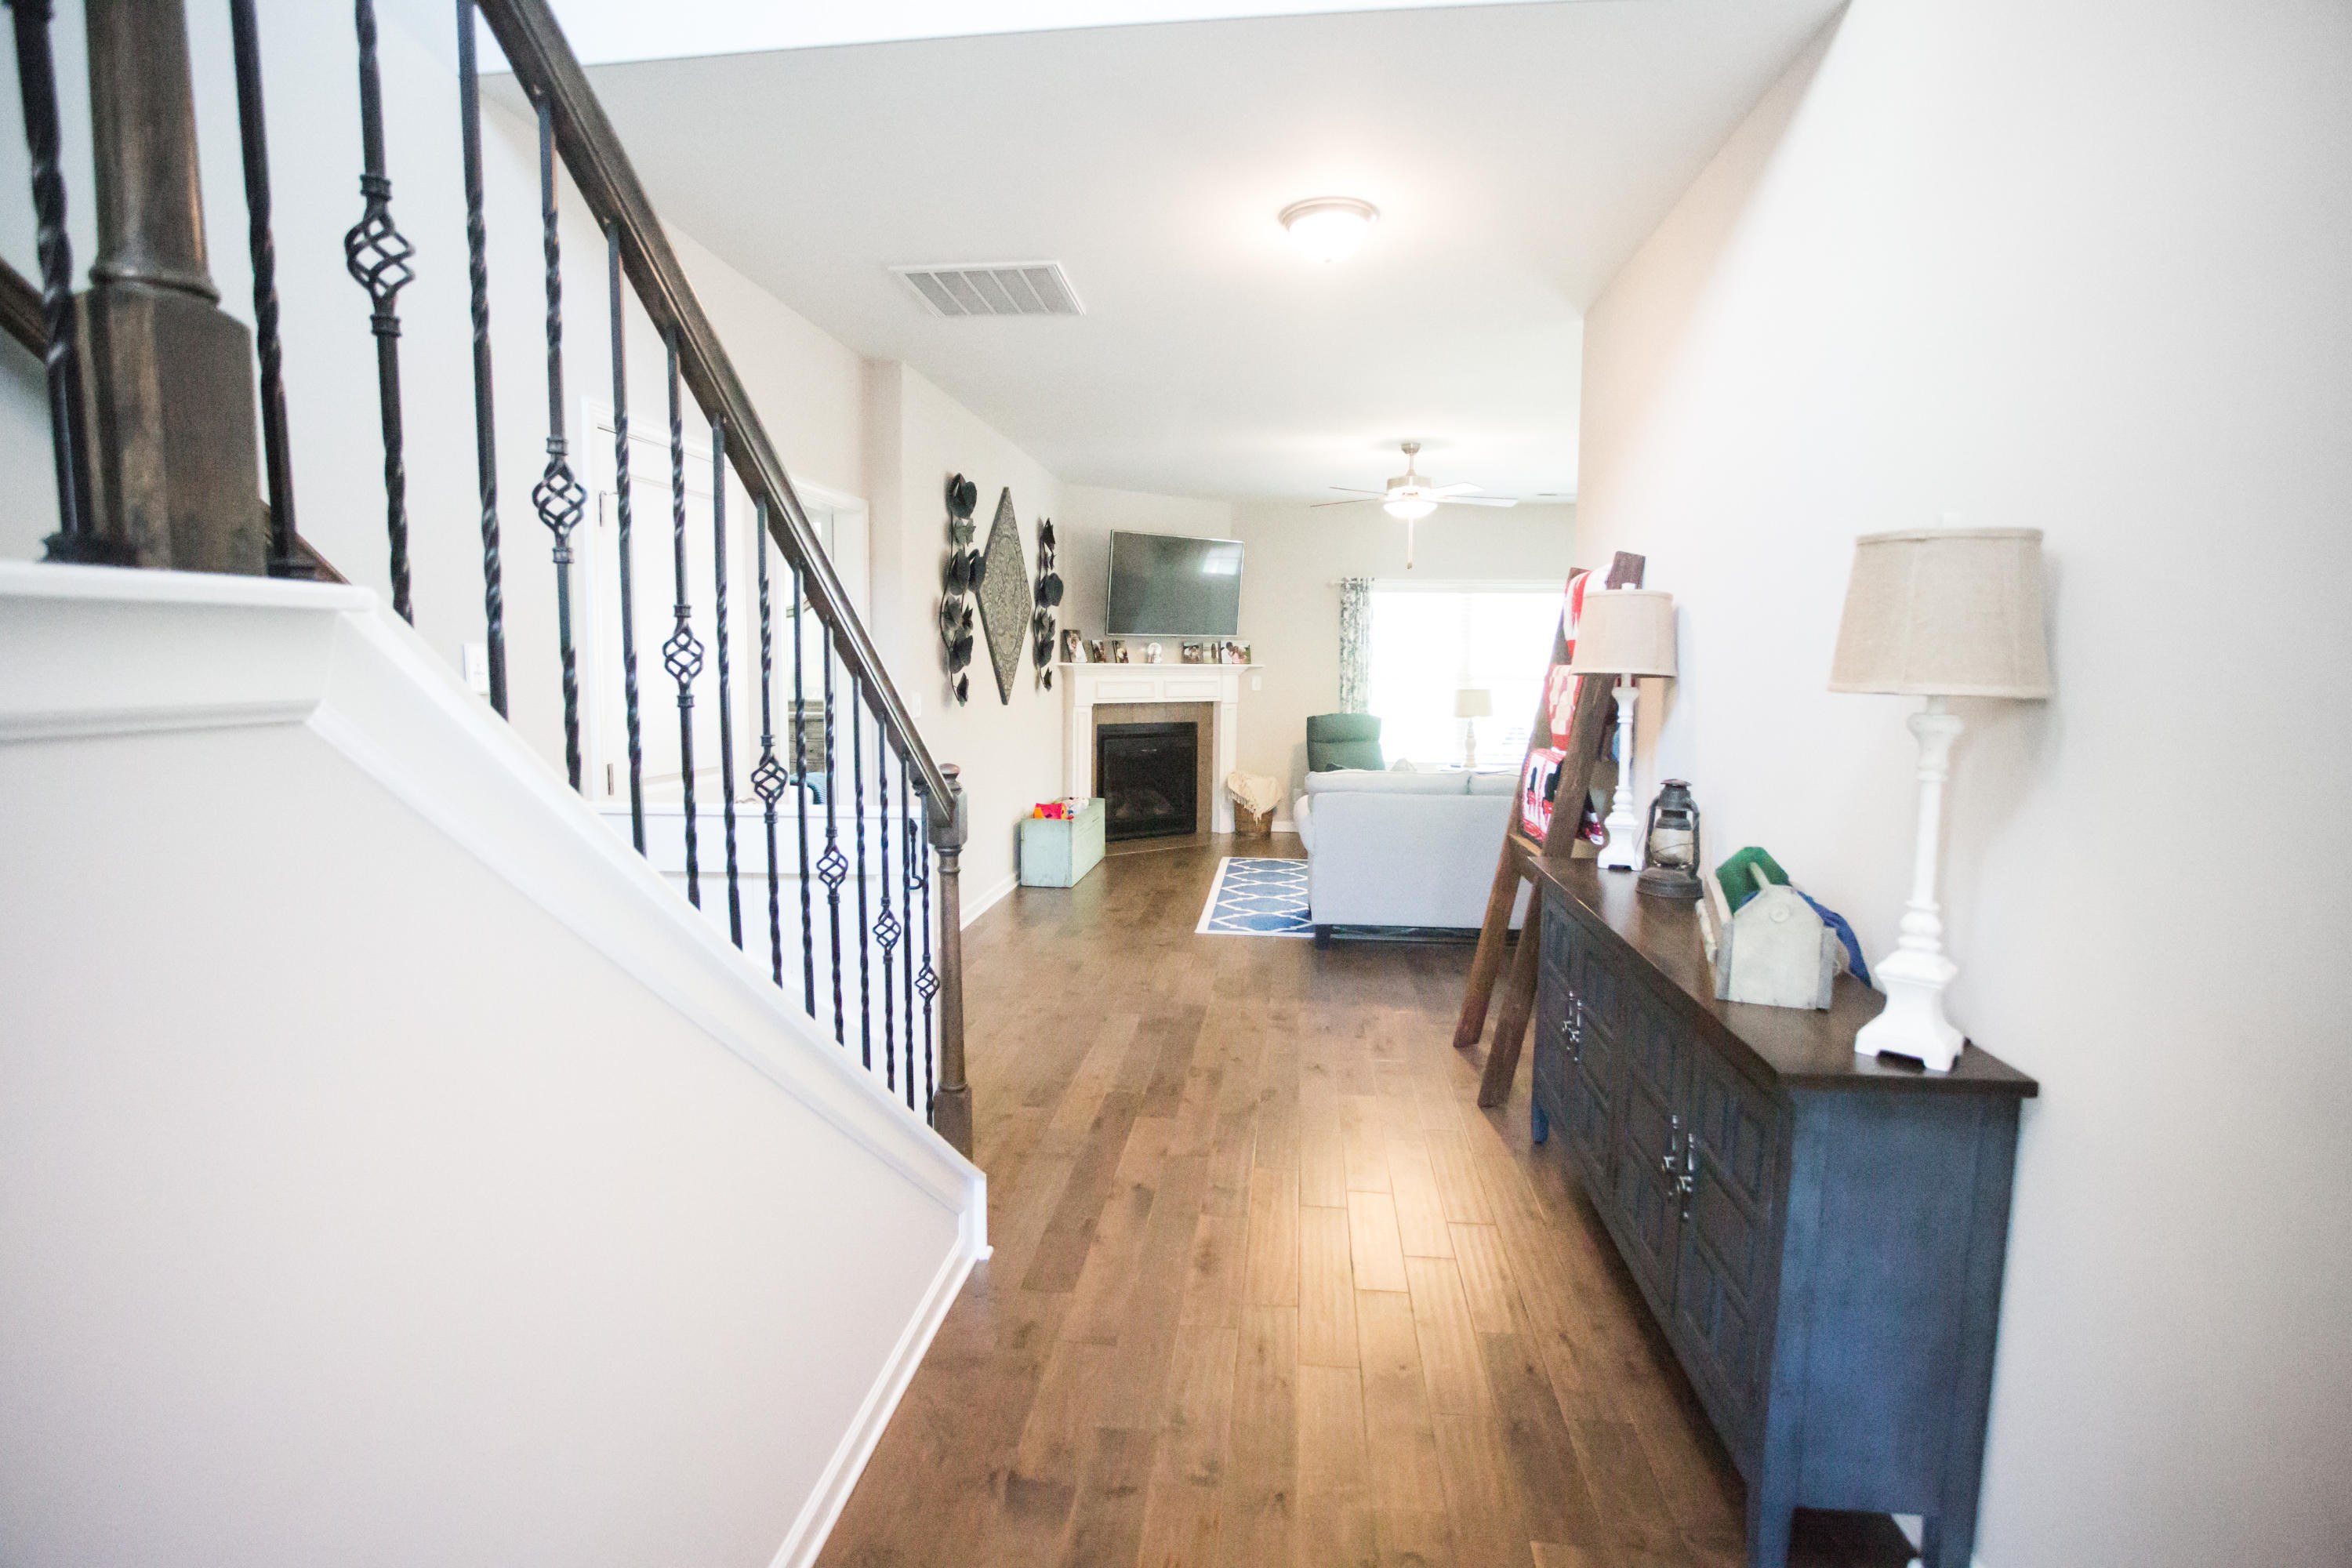 discount hardwood flooring knoxville tn of listing 7506 bellingham drive knoxville tn mls 1055657 shell intended for property photo property photo property photo